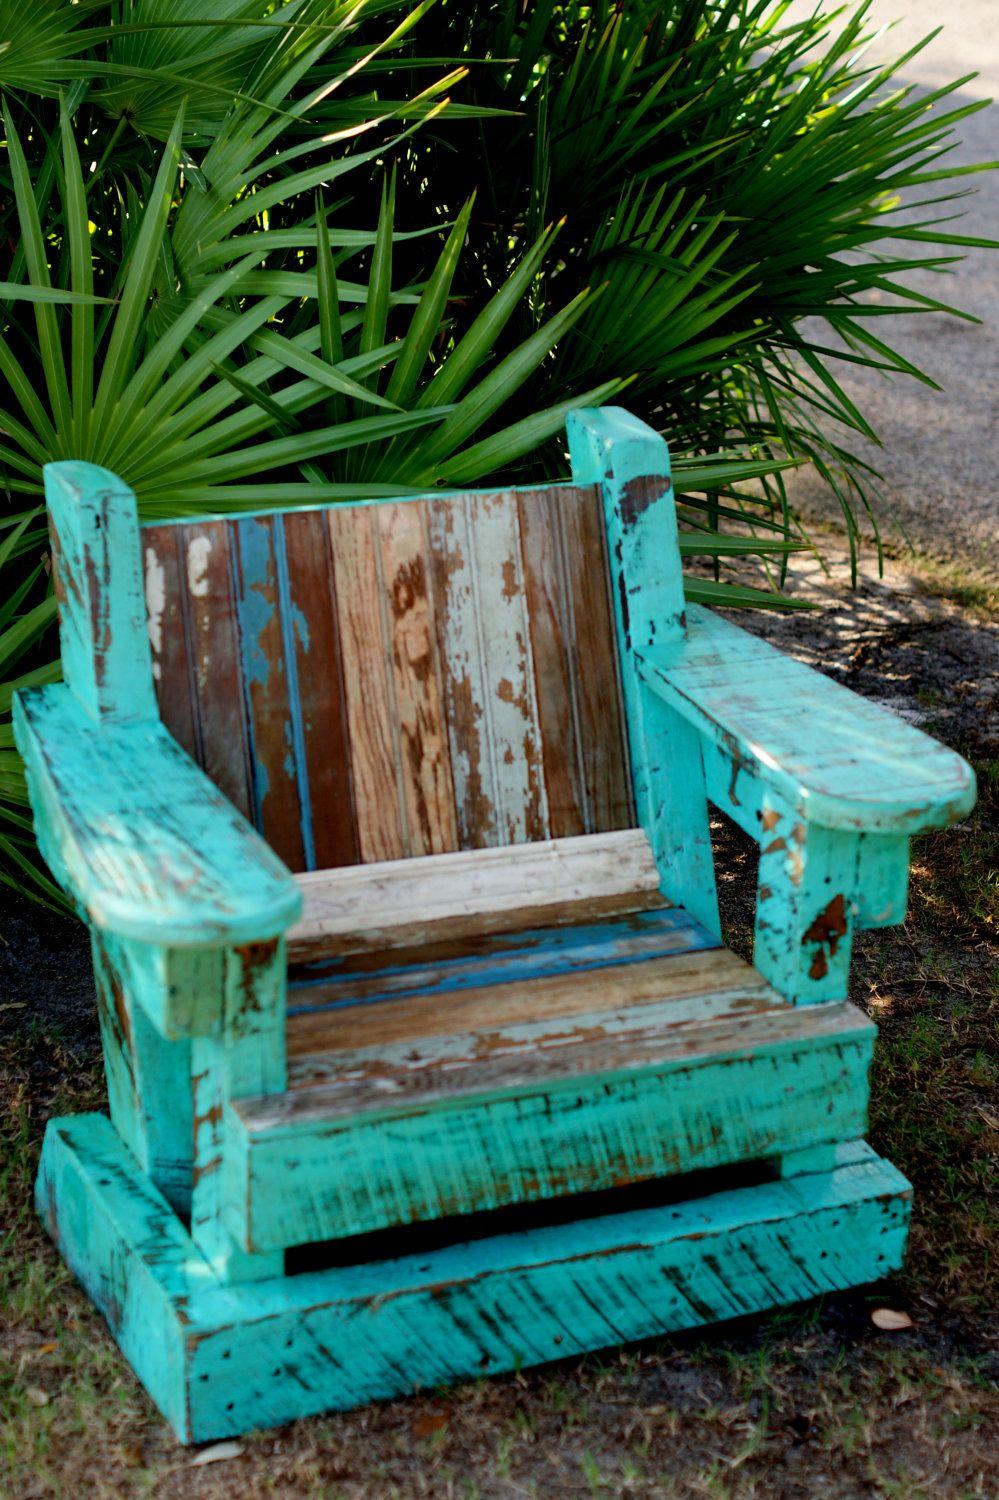 Use as inspiration for wood claimed wood project.     Reclaimed Beadboard Adirondack Chair Child Outdoor Furniture